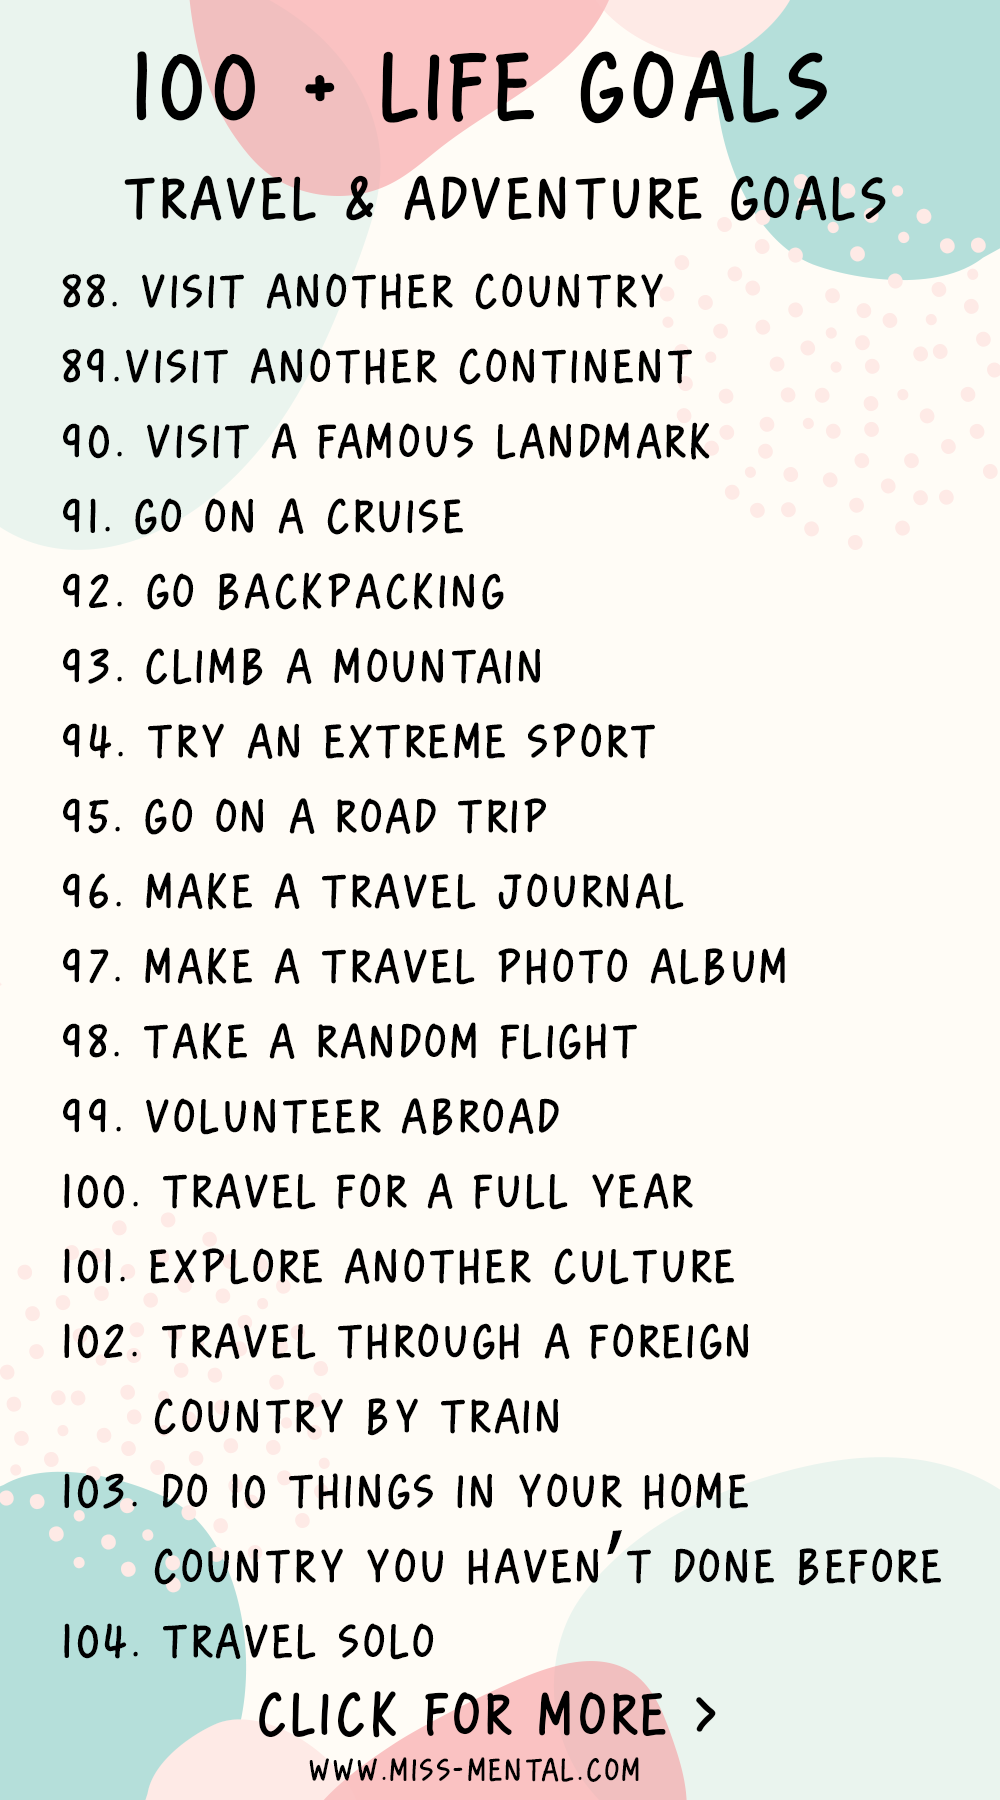 20 + life goals with free printable goal planner   Life goals ...